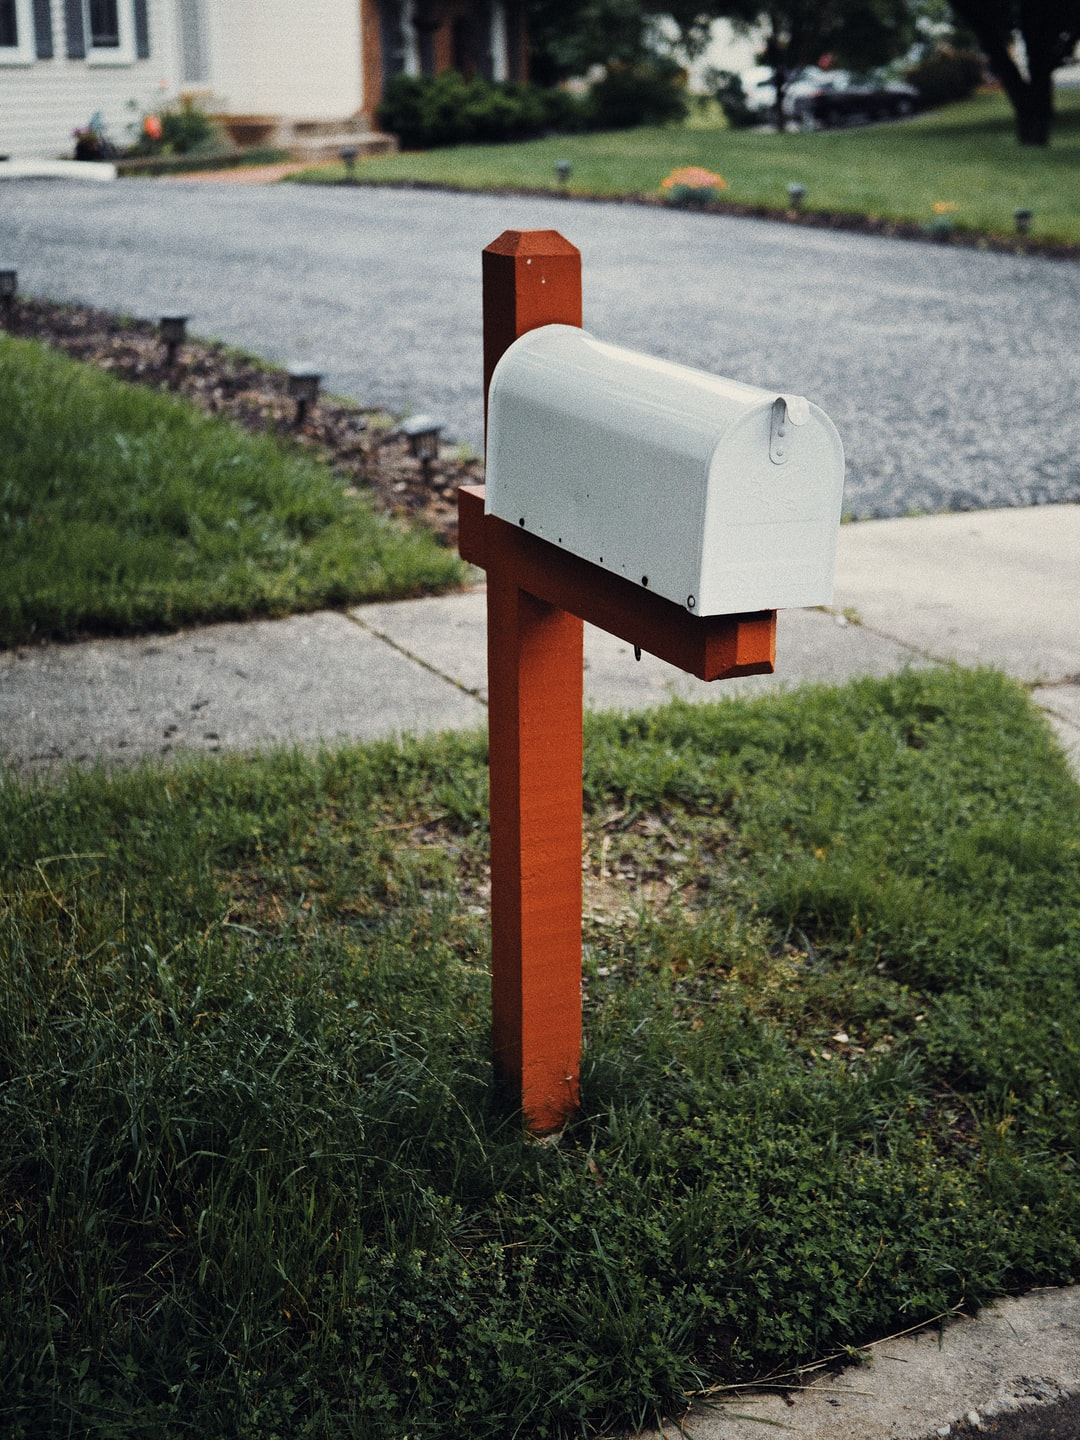 new twist on direct mail to grow home improvement